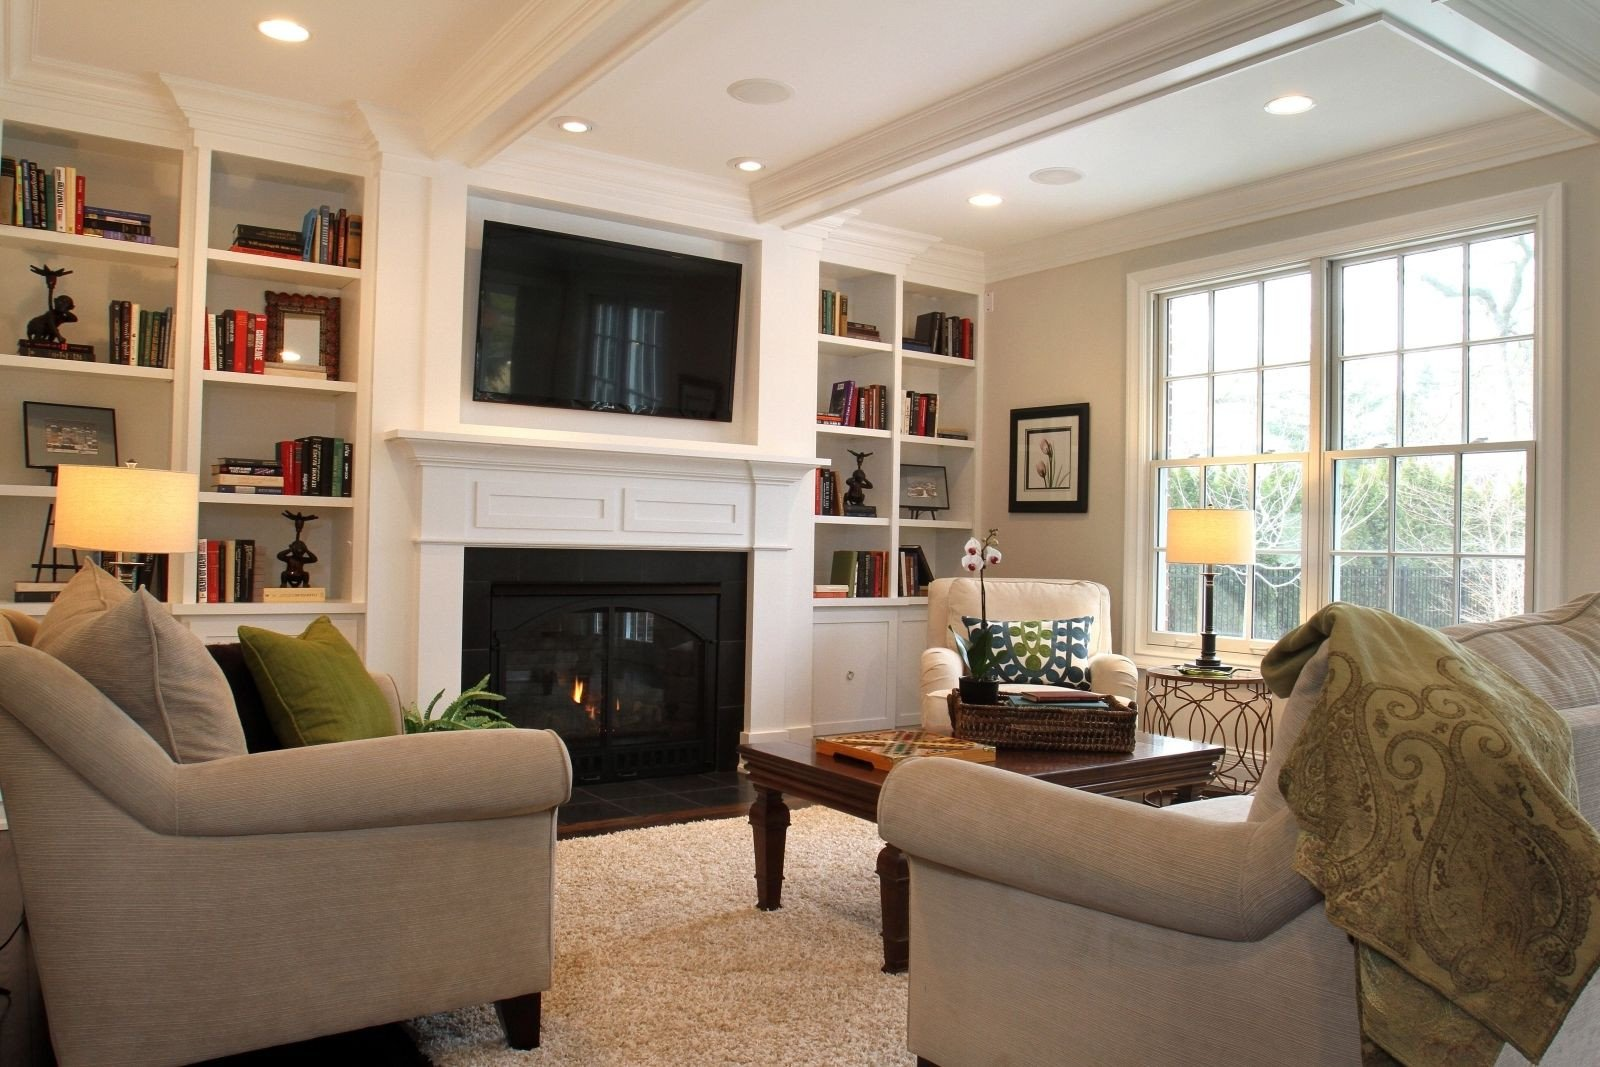 Comfortable Living Room Kitchen Living Room fortable Design Ideas for Family Rooms Room